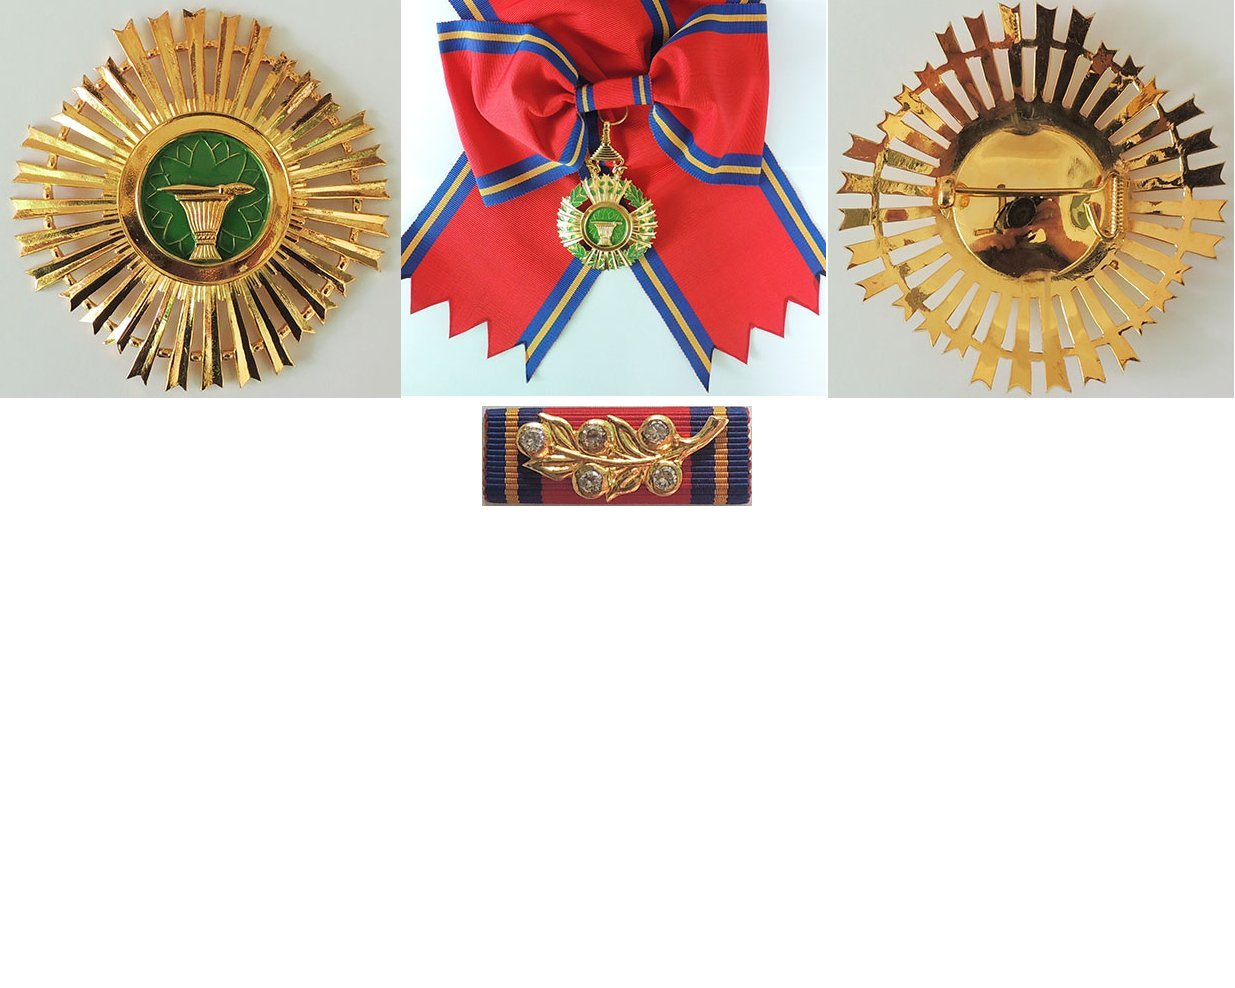 FM0507. CAMBODIA ROYAL ORDER OF SAHAMETREI, Grand Cross set